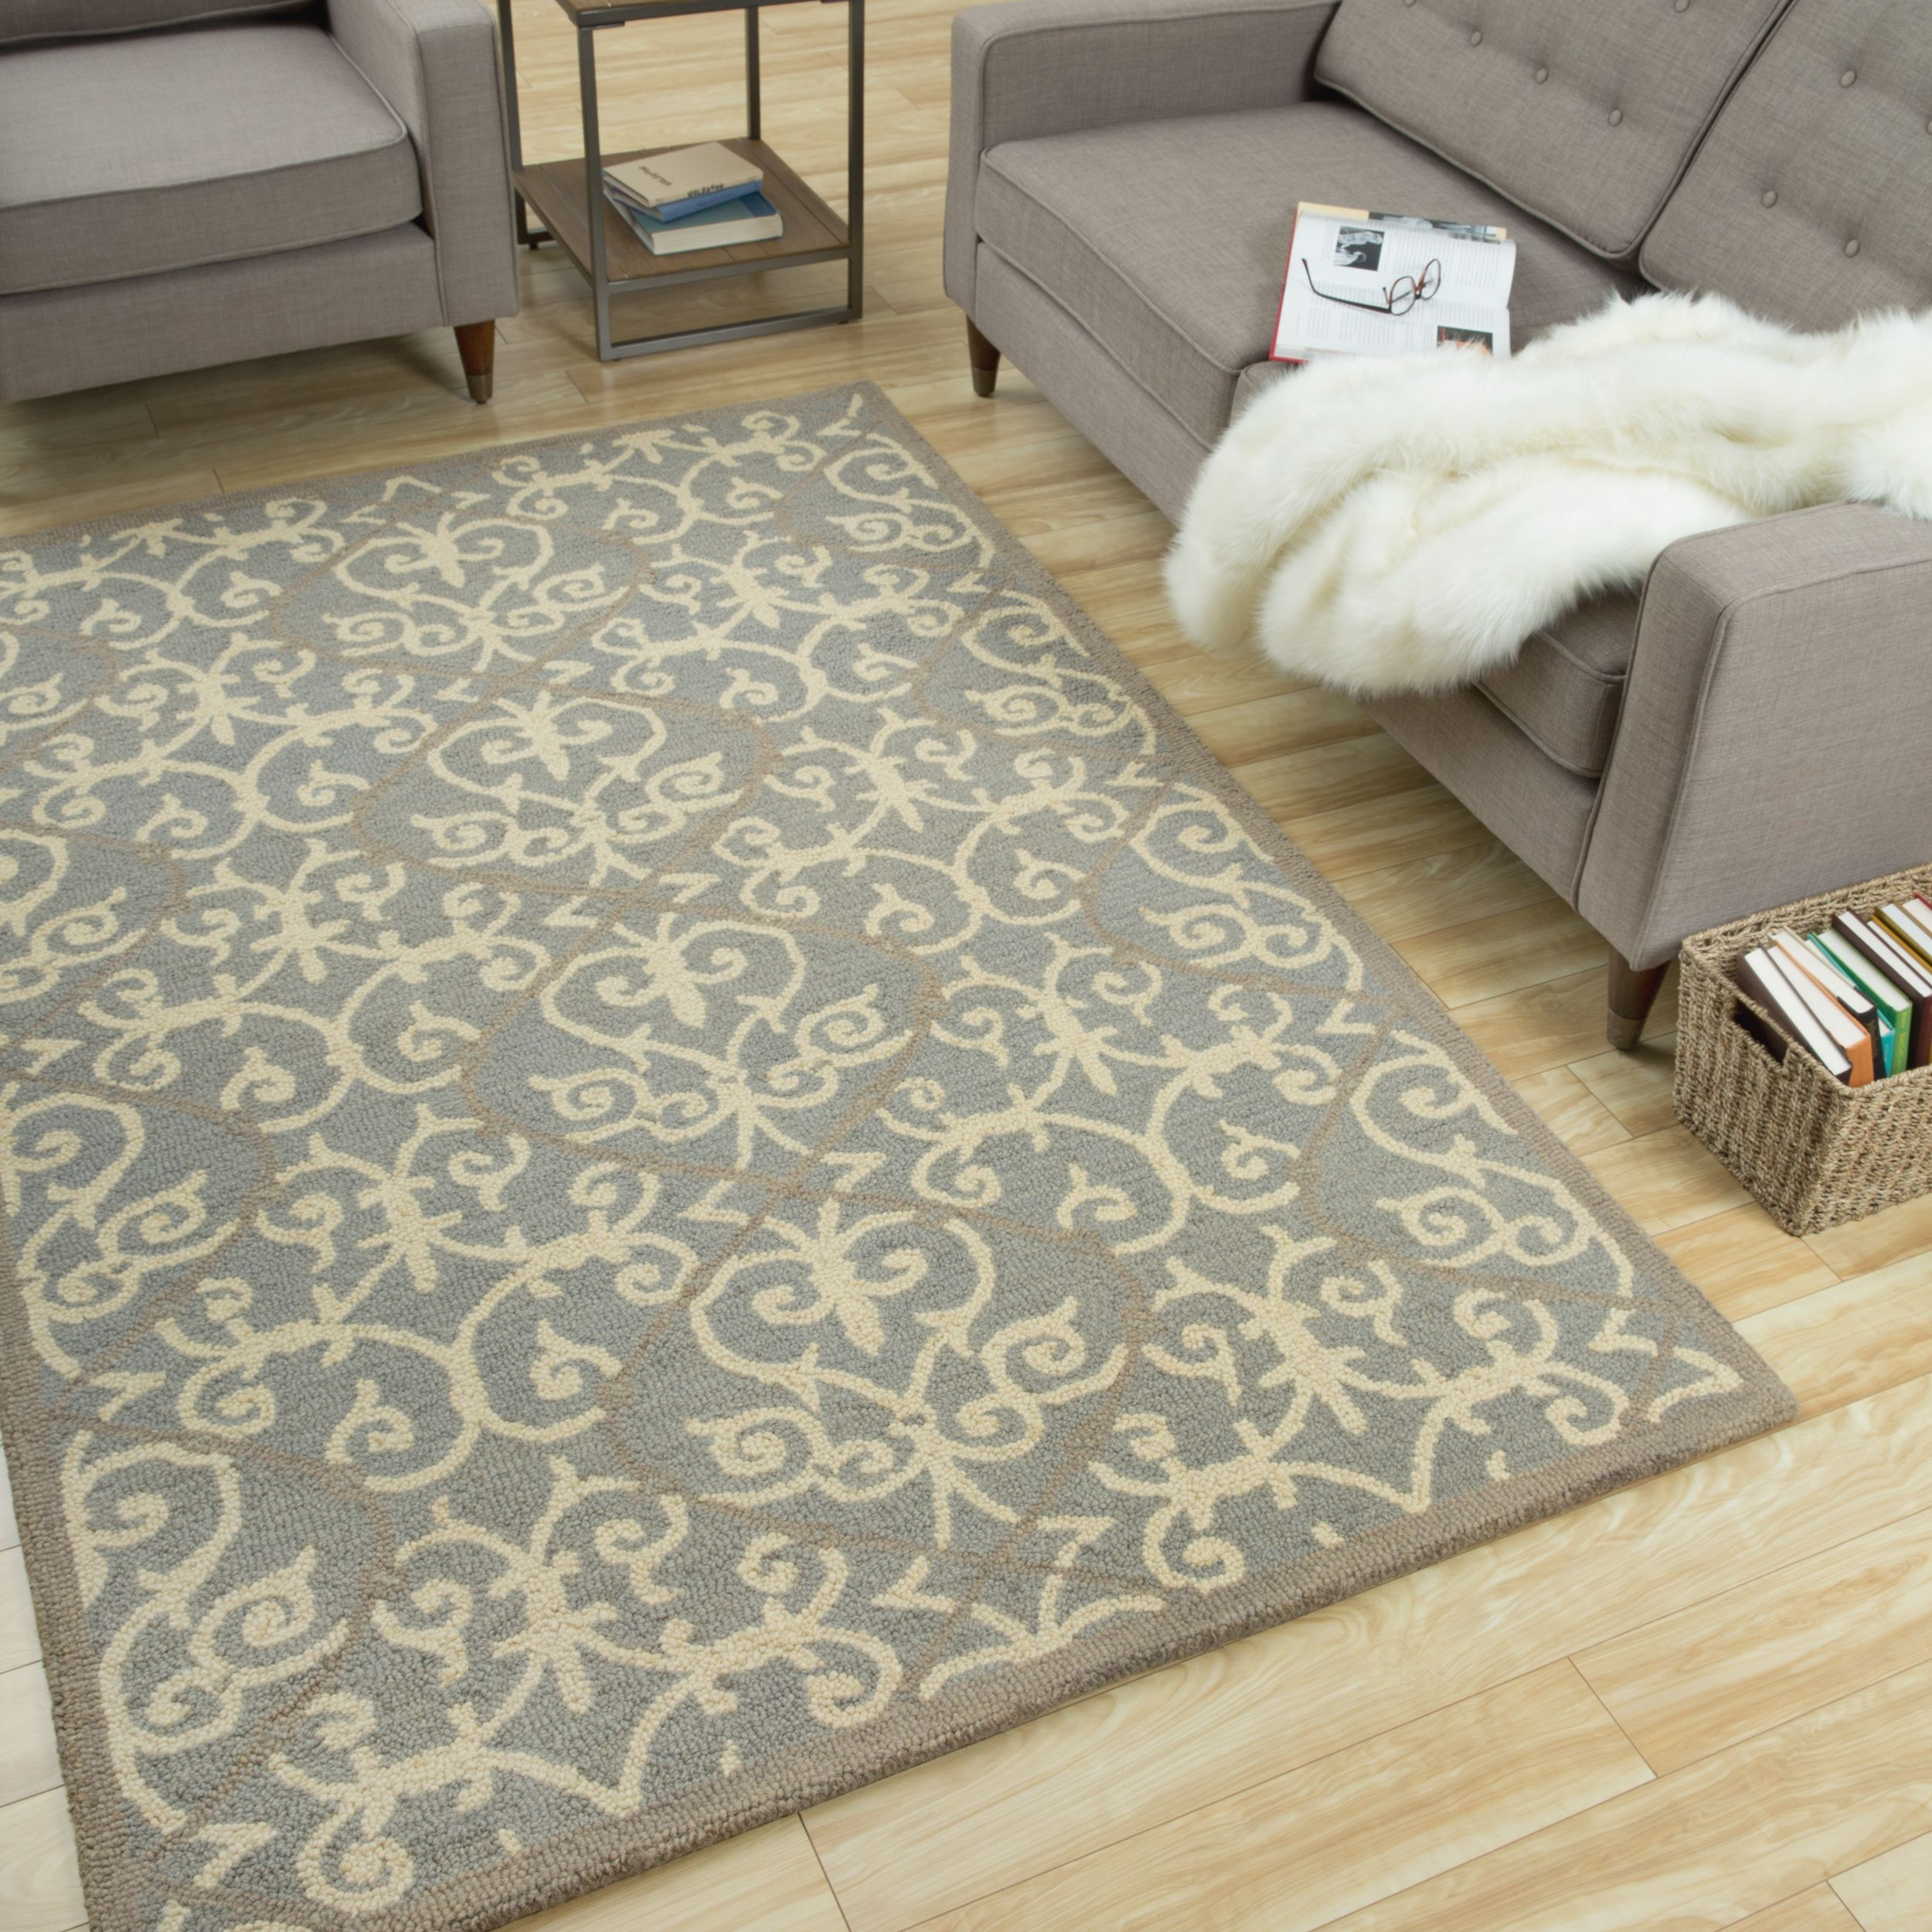 Patterned Area Rugs Interesting Decoration